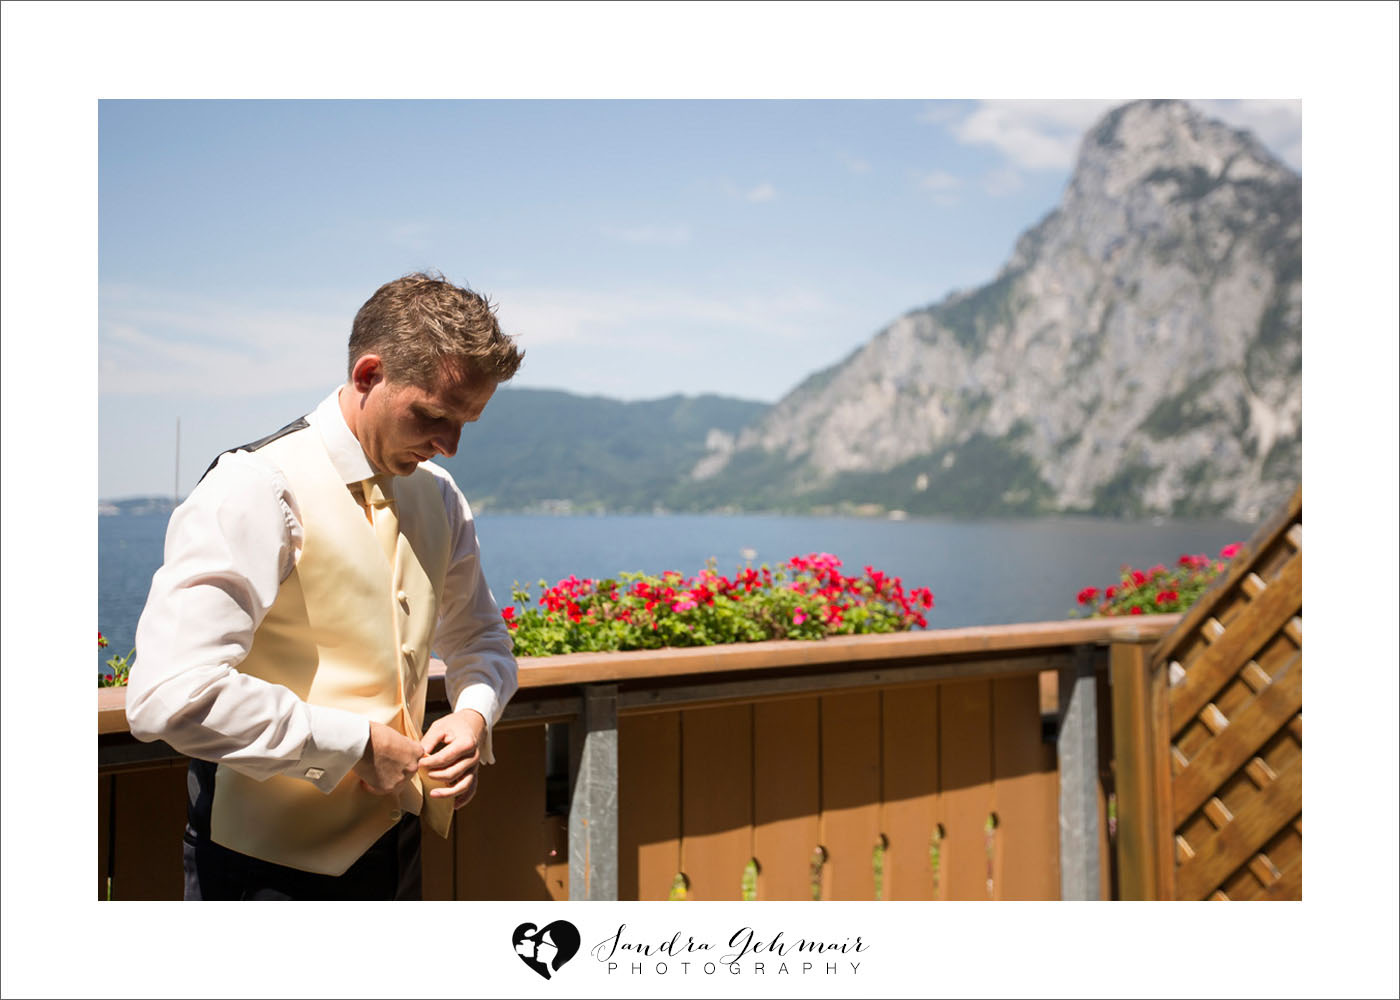 005_heiraten_am_see_spitzvilla_sandra_gehmair